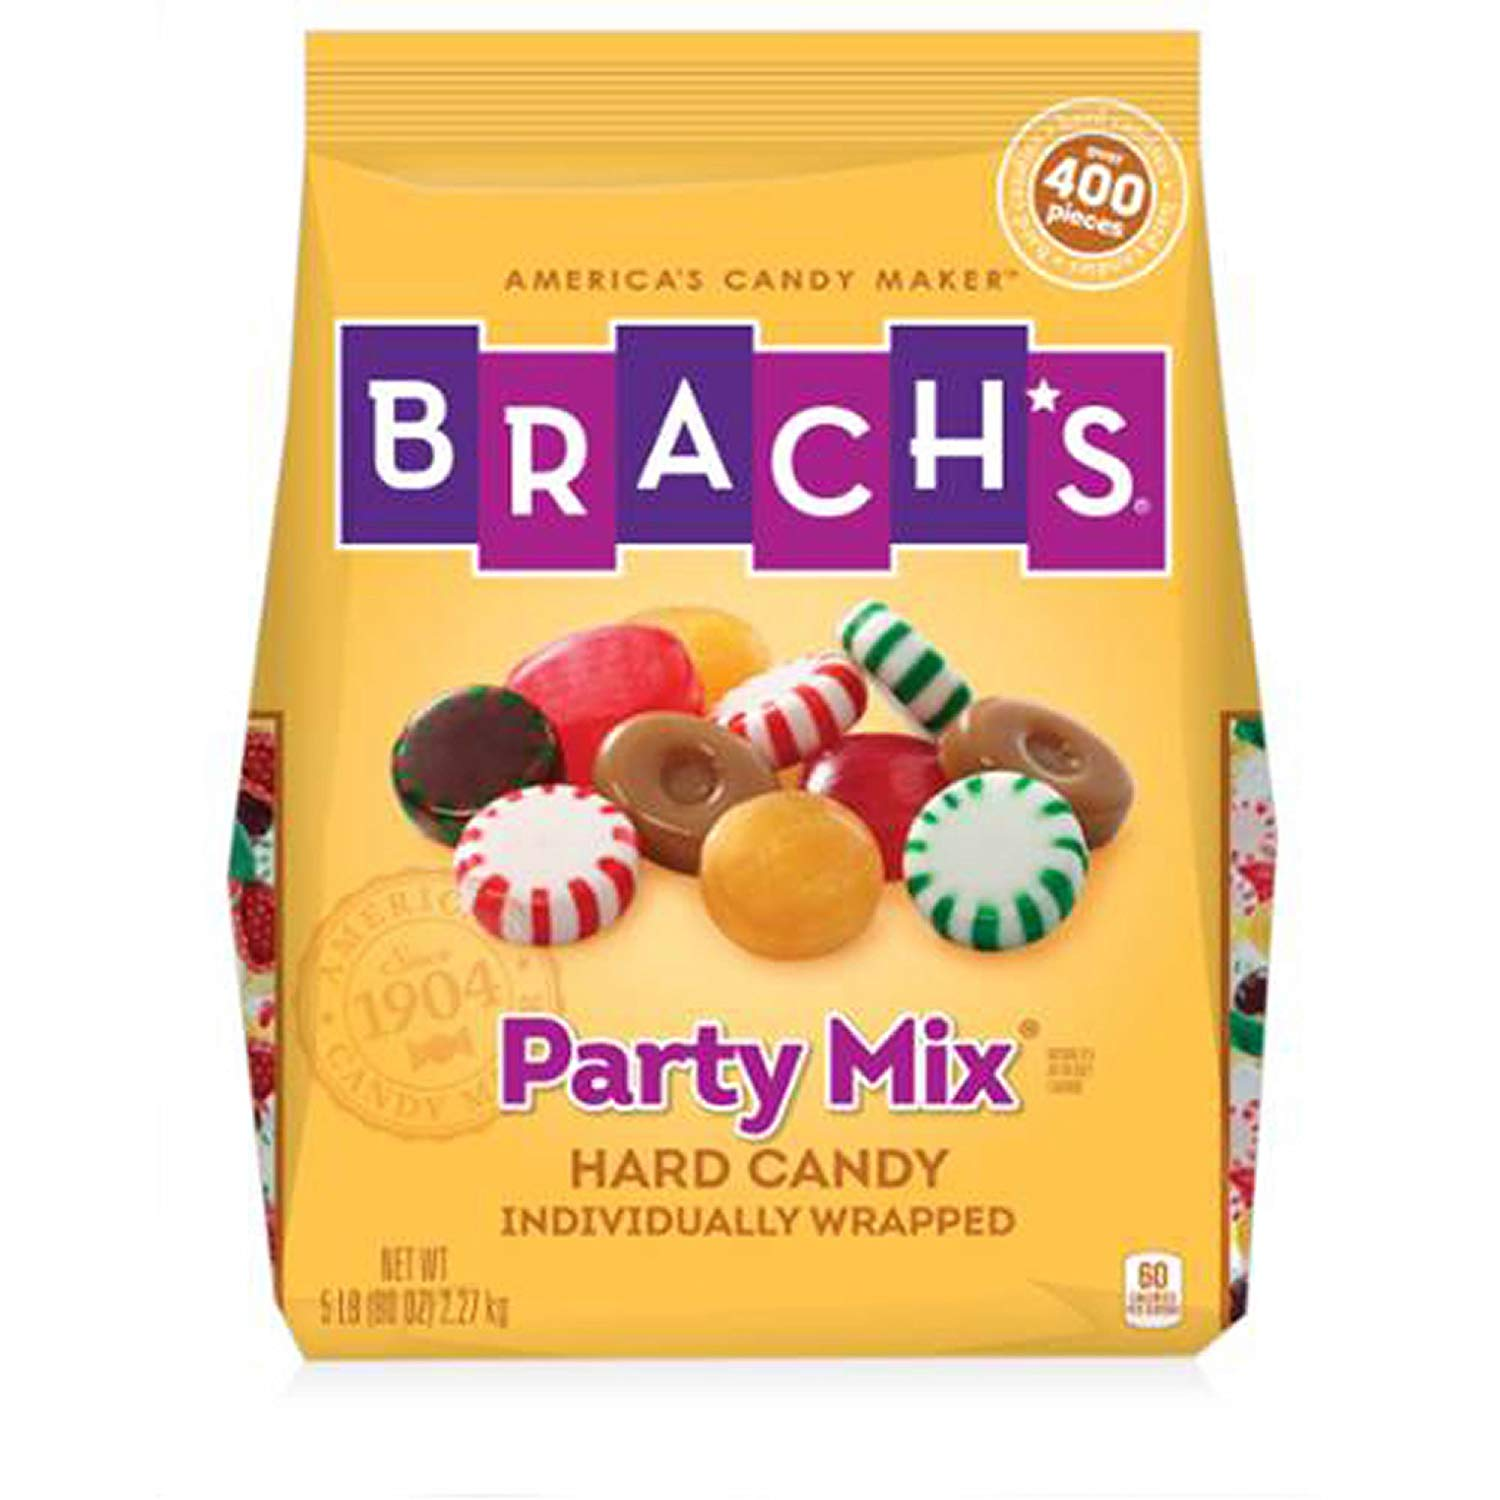 Brach's, Party Mix Individually Wrapped Hard Candies, 5 Lb